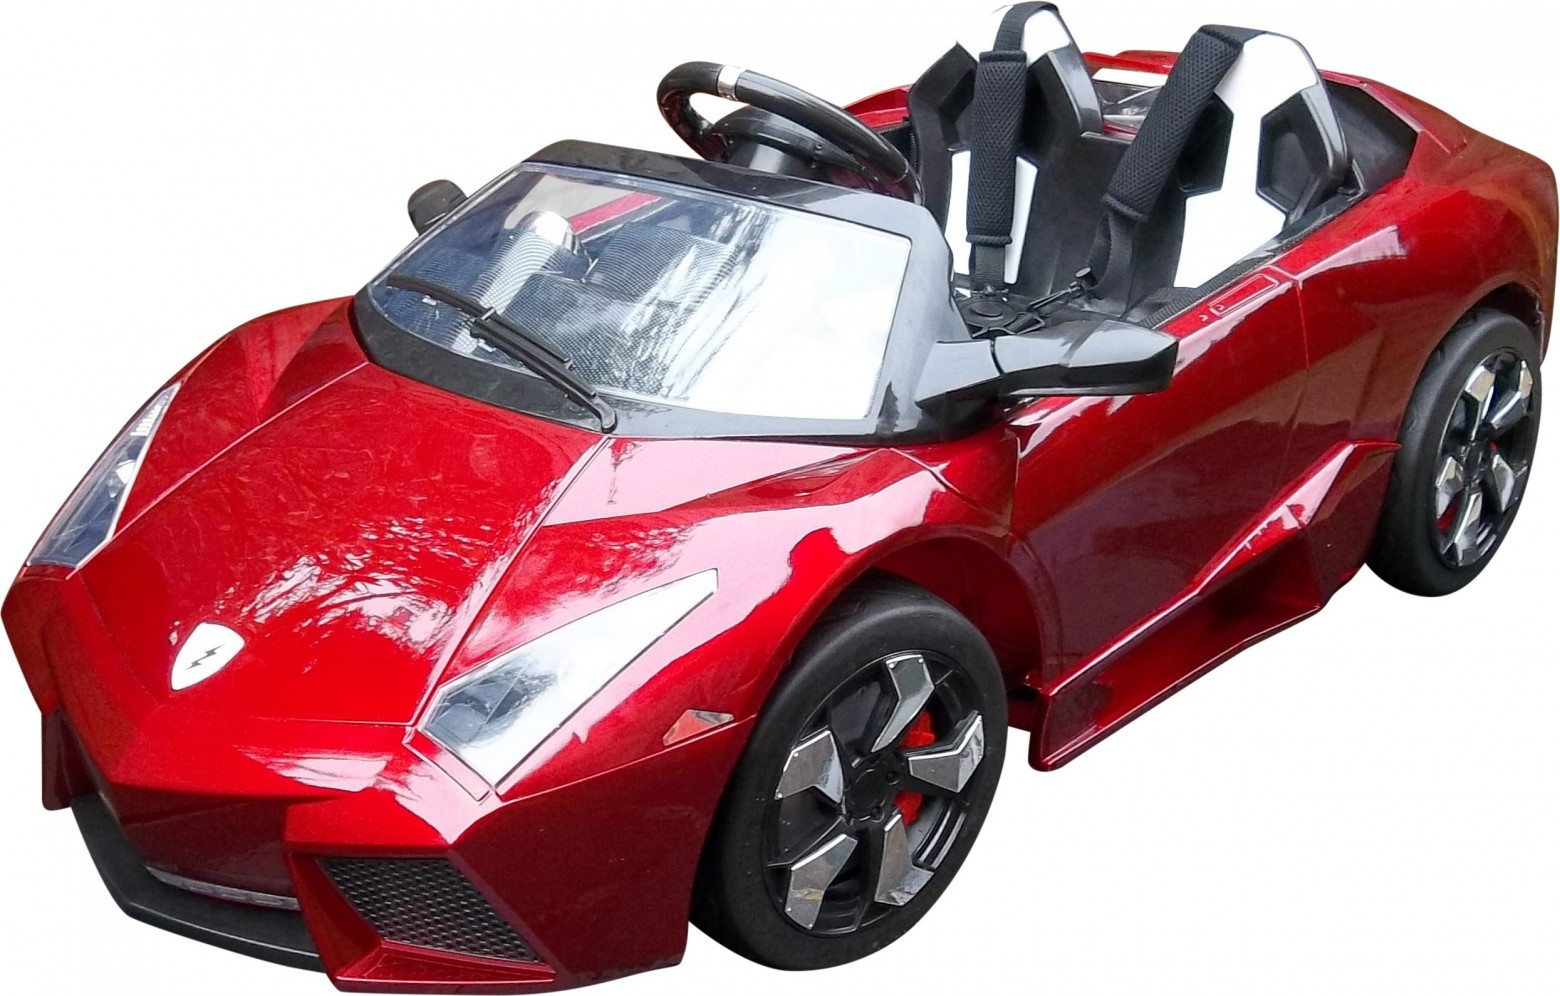 Lamborghini Electric Car For Kids >> Rebo Lamborghini Style 12v Kids Electric Car With Remote Control